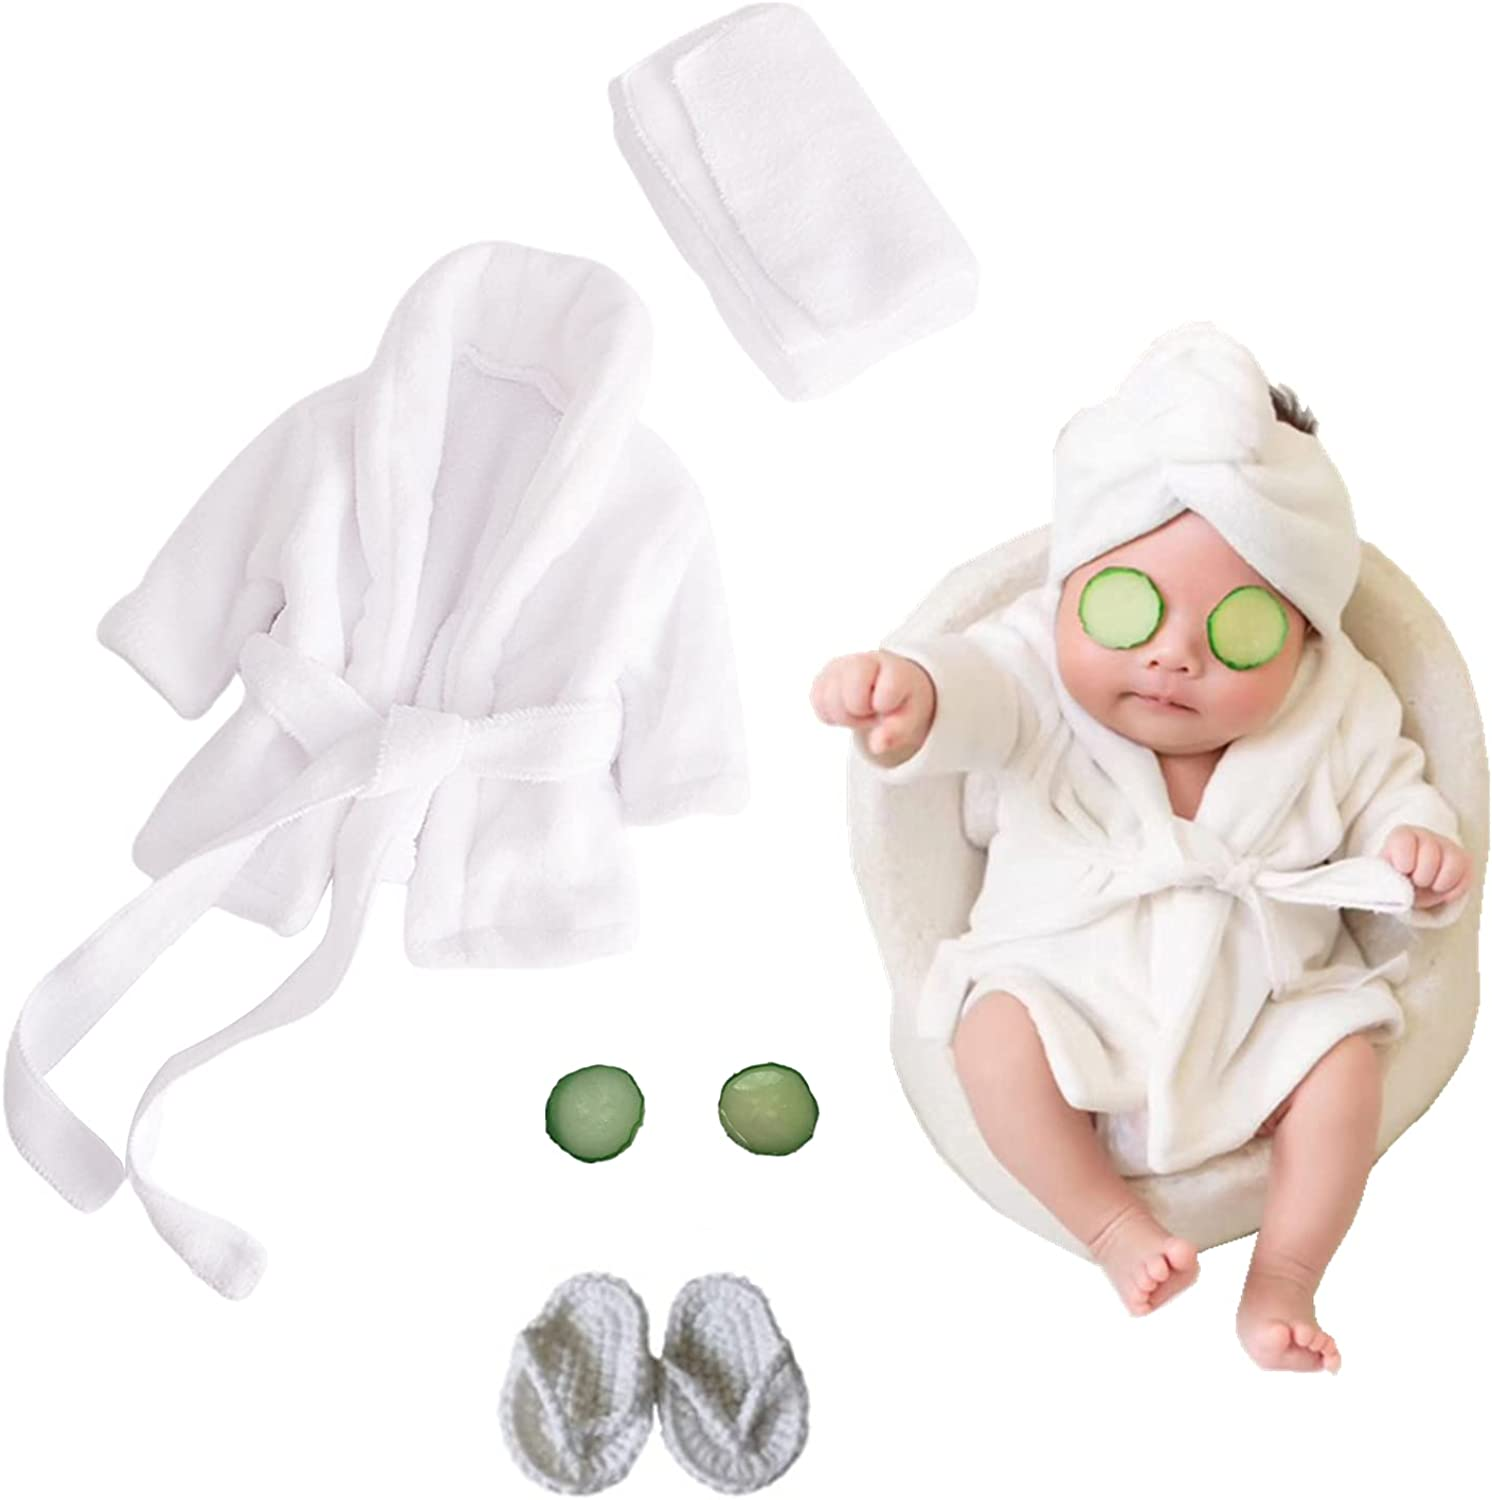 5PCS Newborn Photography Outfits, Baby Bathrobes Bath Towel Outfit with Slippers Photo Props for Girls and Boys